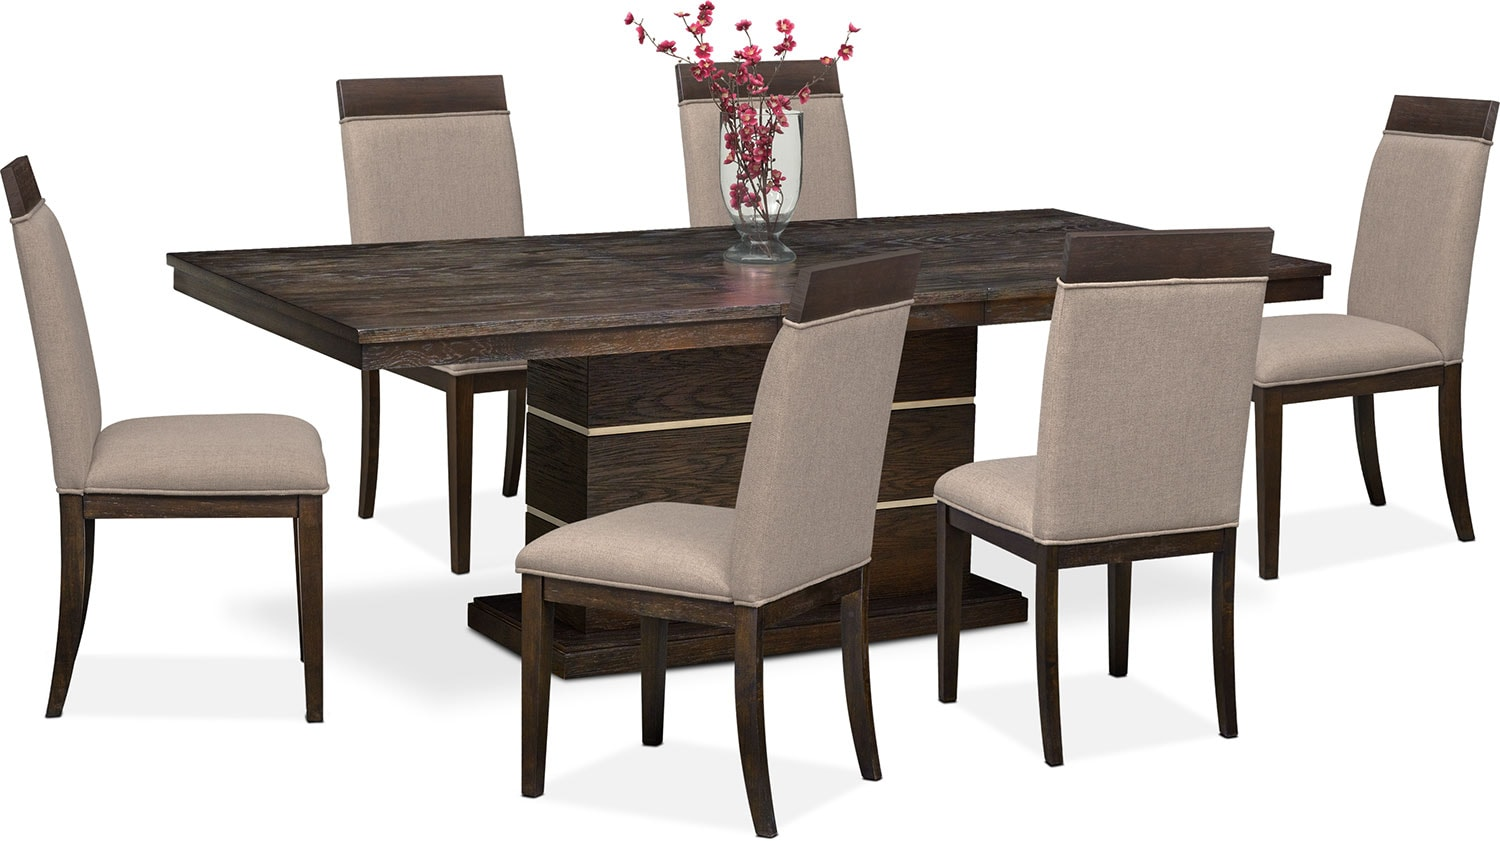 Gavin pedestal table and 6 side chairs brownstone for Side chairs for dining table